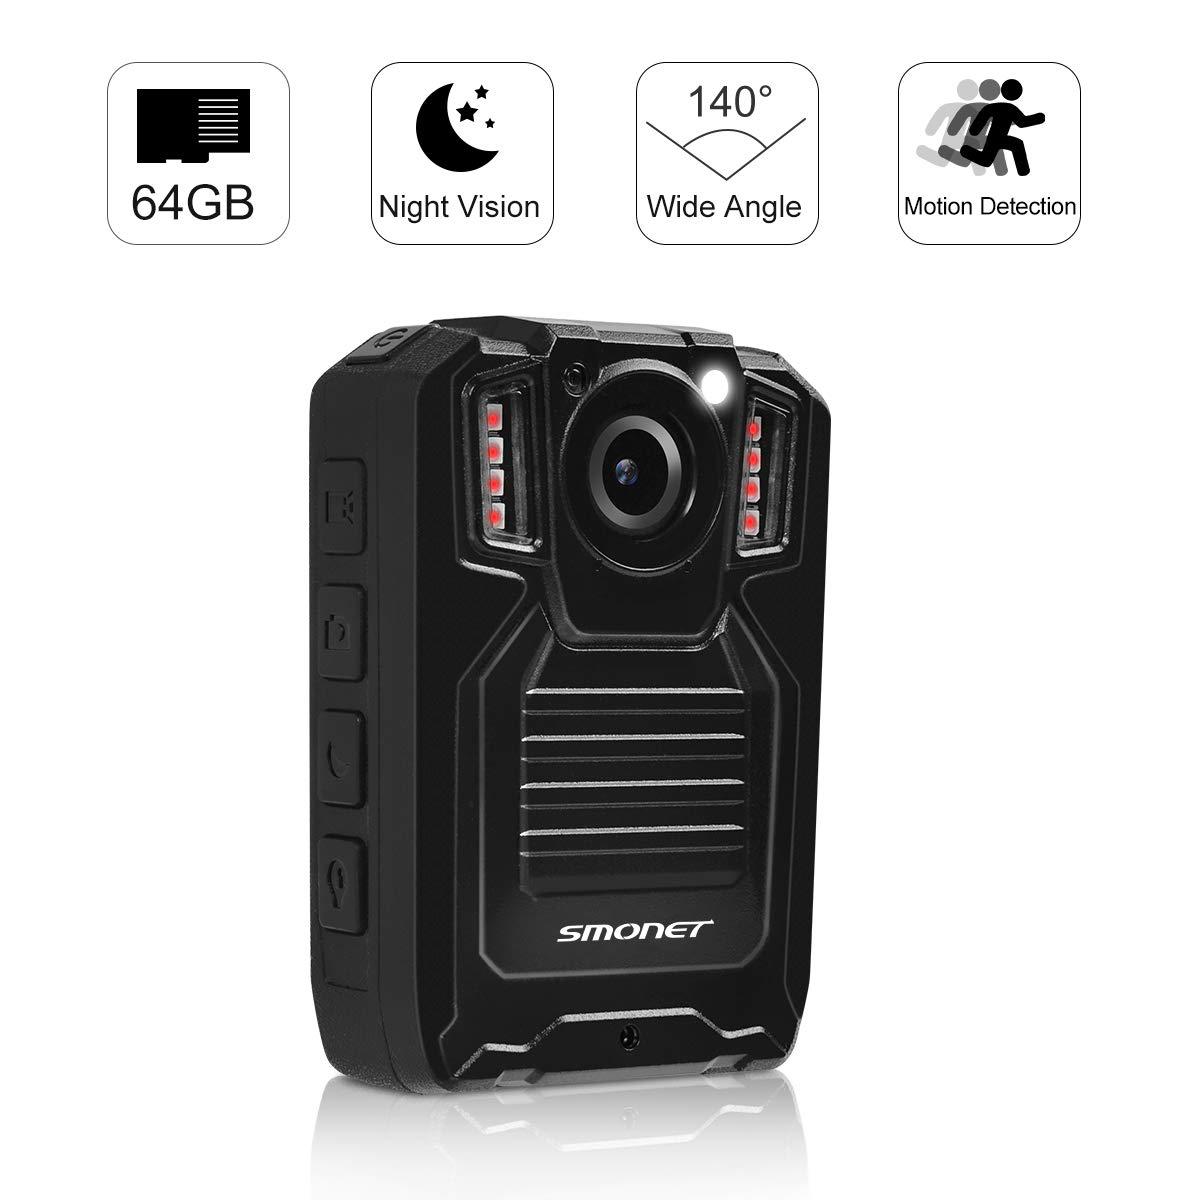 SMONET 【2019 New】 Body Camera with Audio, HD Police Body Camera(Built in 64GB),2 Inch Display Body Cameras for Law Enforcement, Body Worn Camera with Night Vision,Video Recorder,Waterproof by SMONET (Image #1)